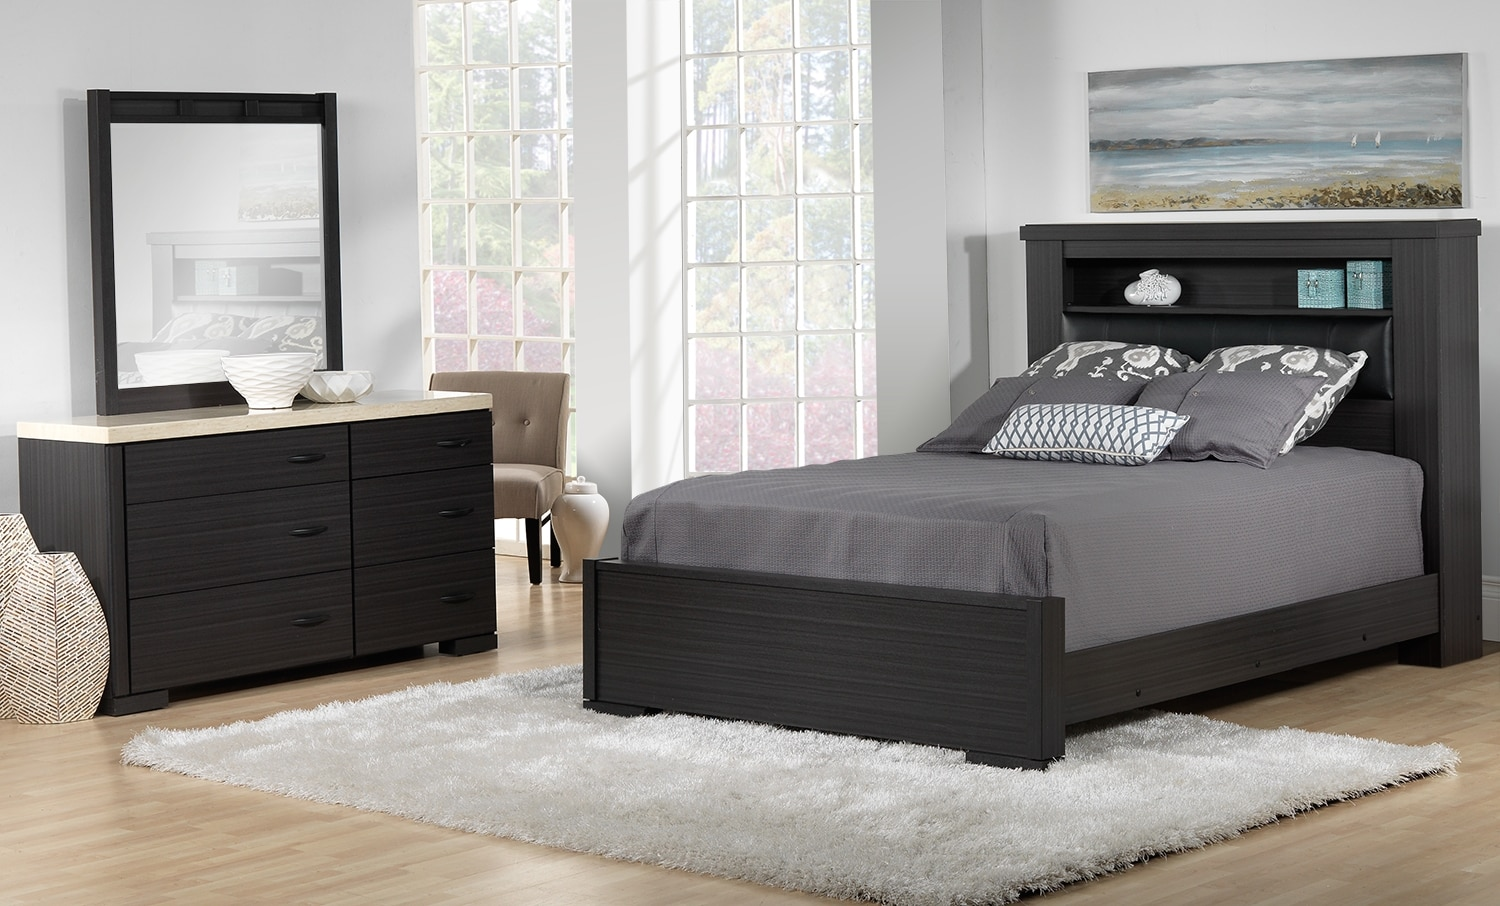 Santee 5 piece king bedroom set charcoal white leon 39 s for 5 piece bedroom set